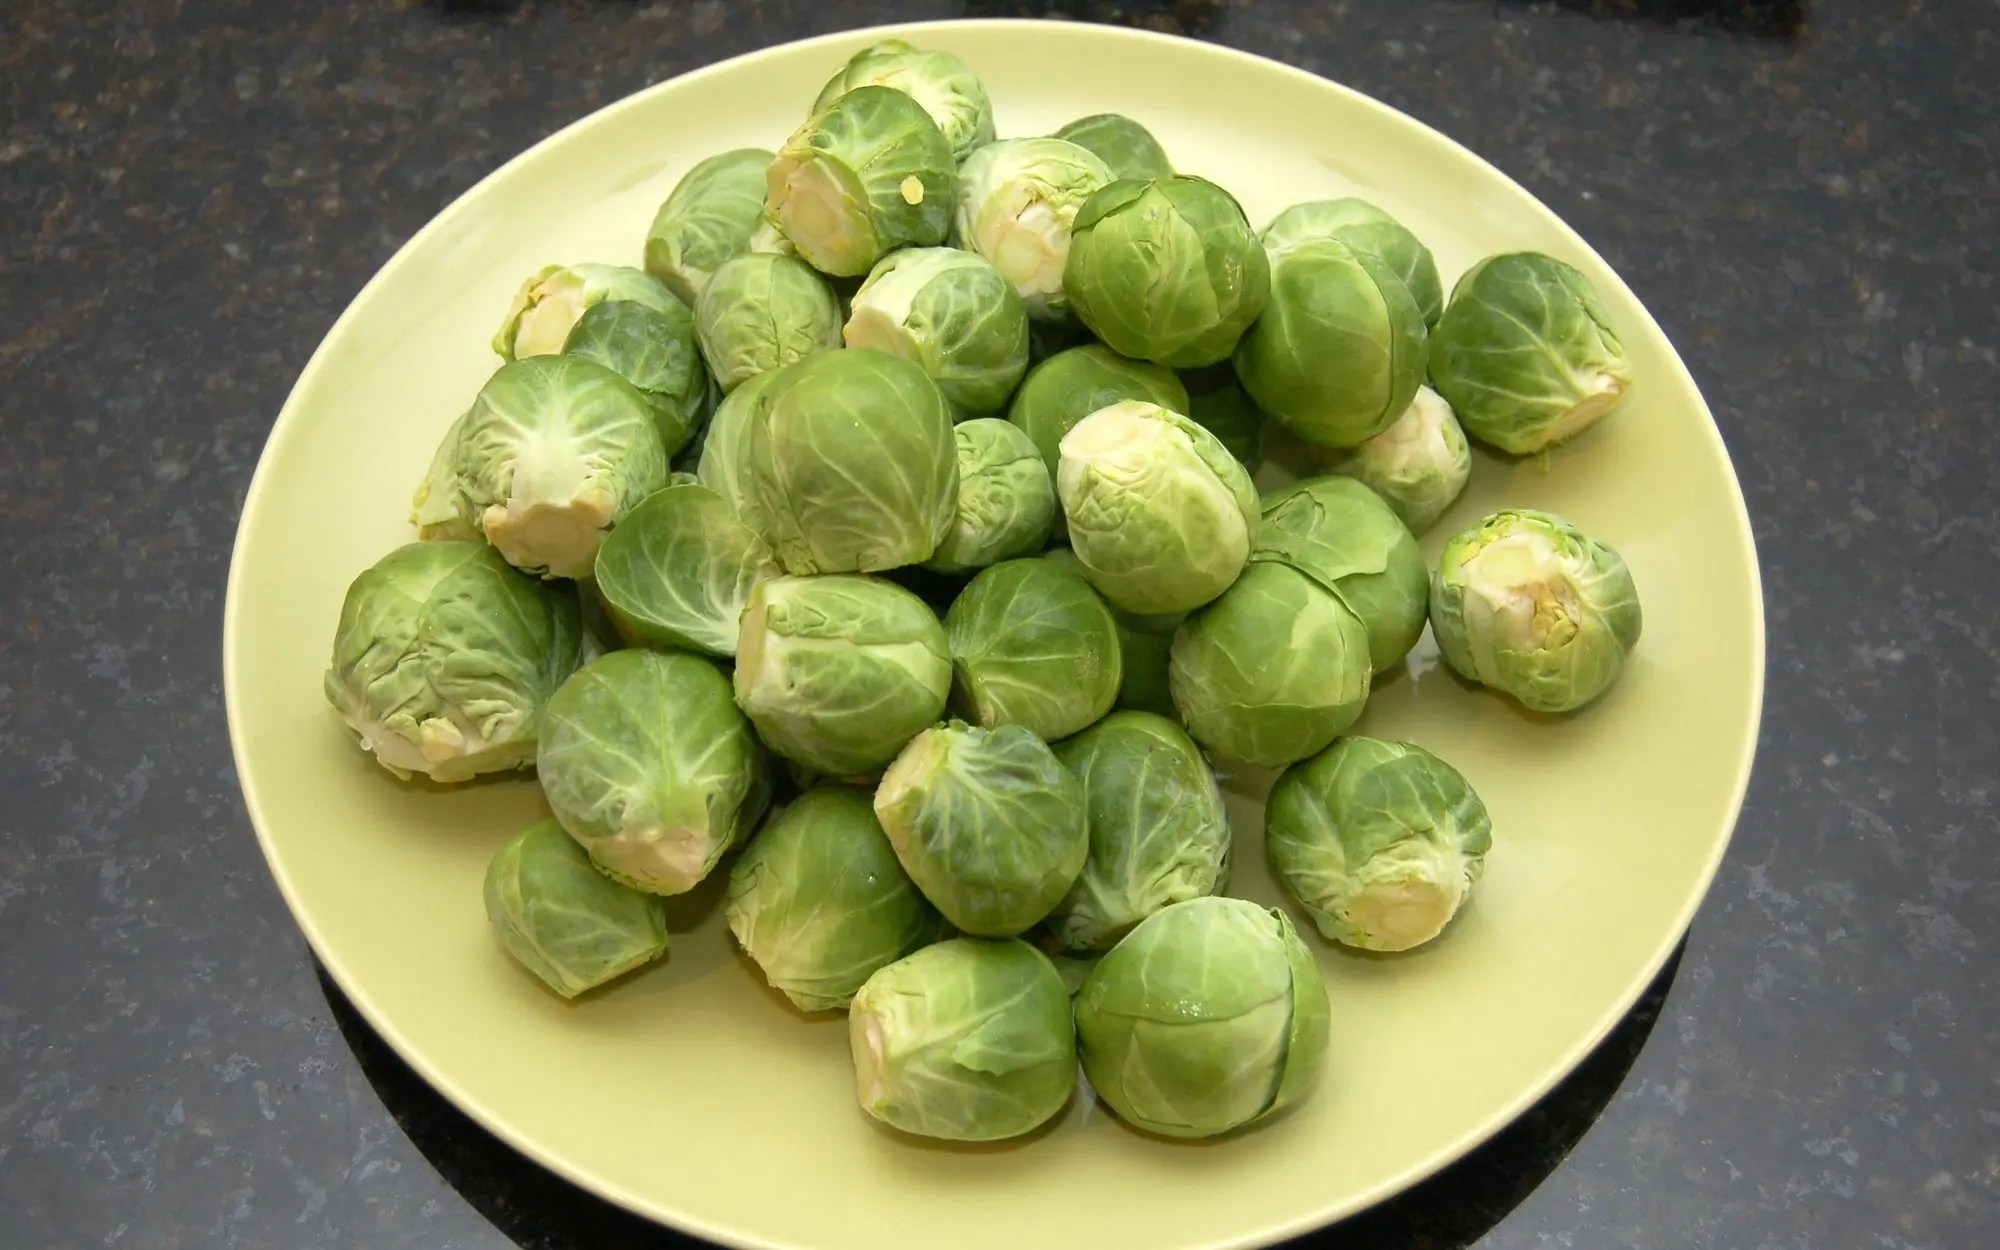 Sliced, Sauteed Brussels Sprouts with Maple Syrup